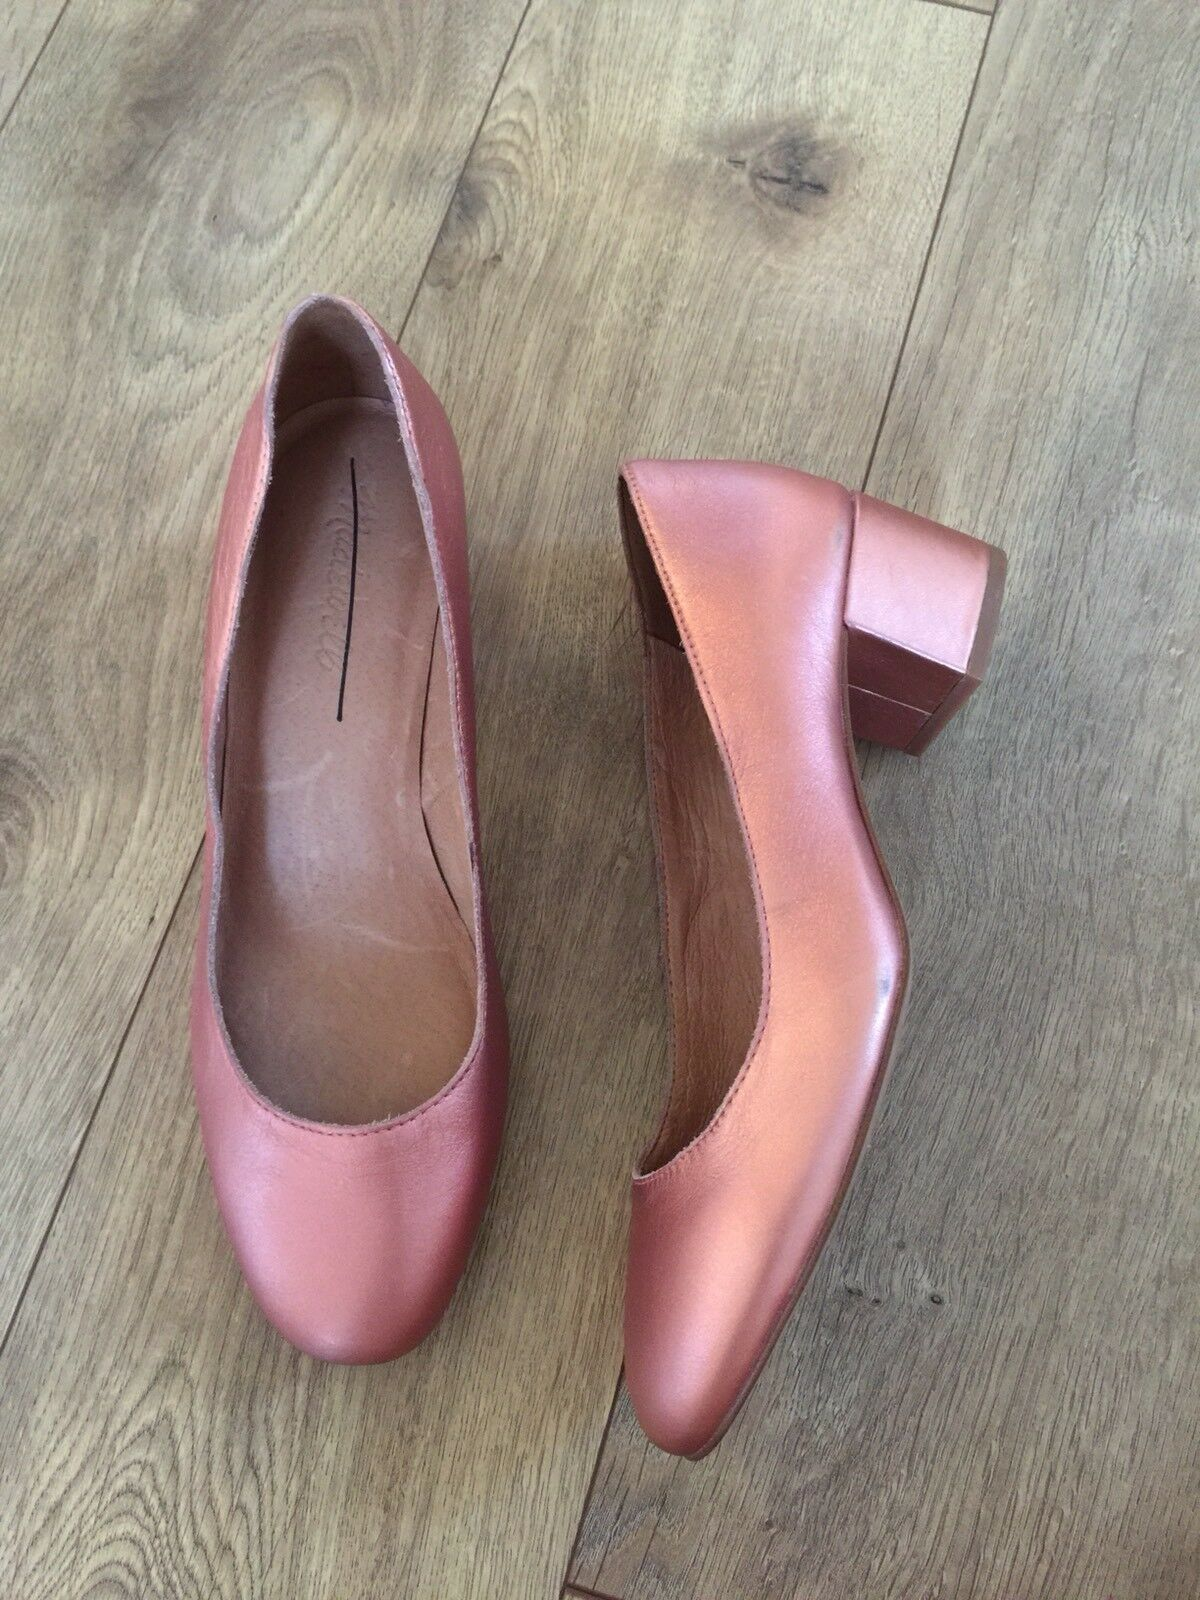 New Madewell The The The Ella Pumps Sz 8 Metallic Block Heels H2163 pink gold Pink d4a301